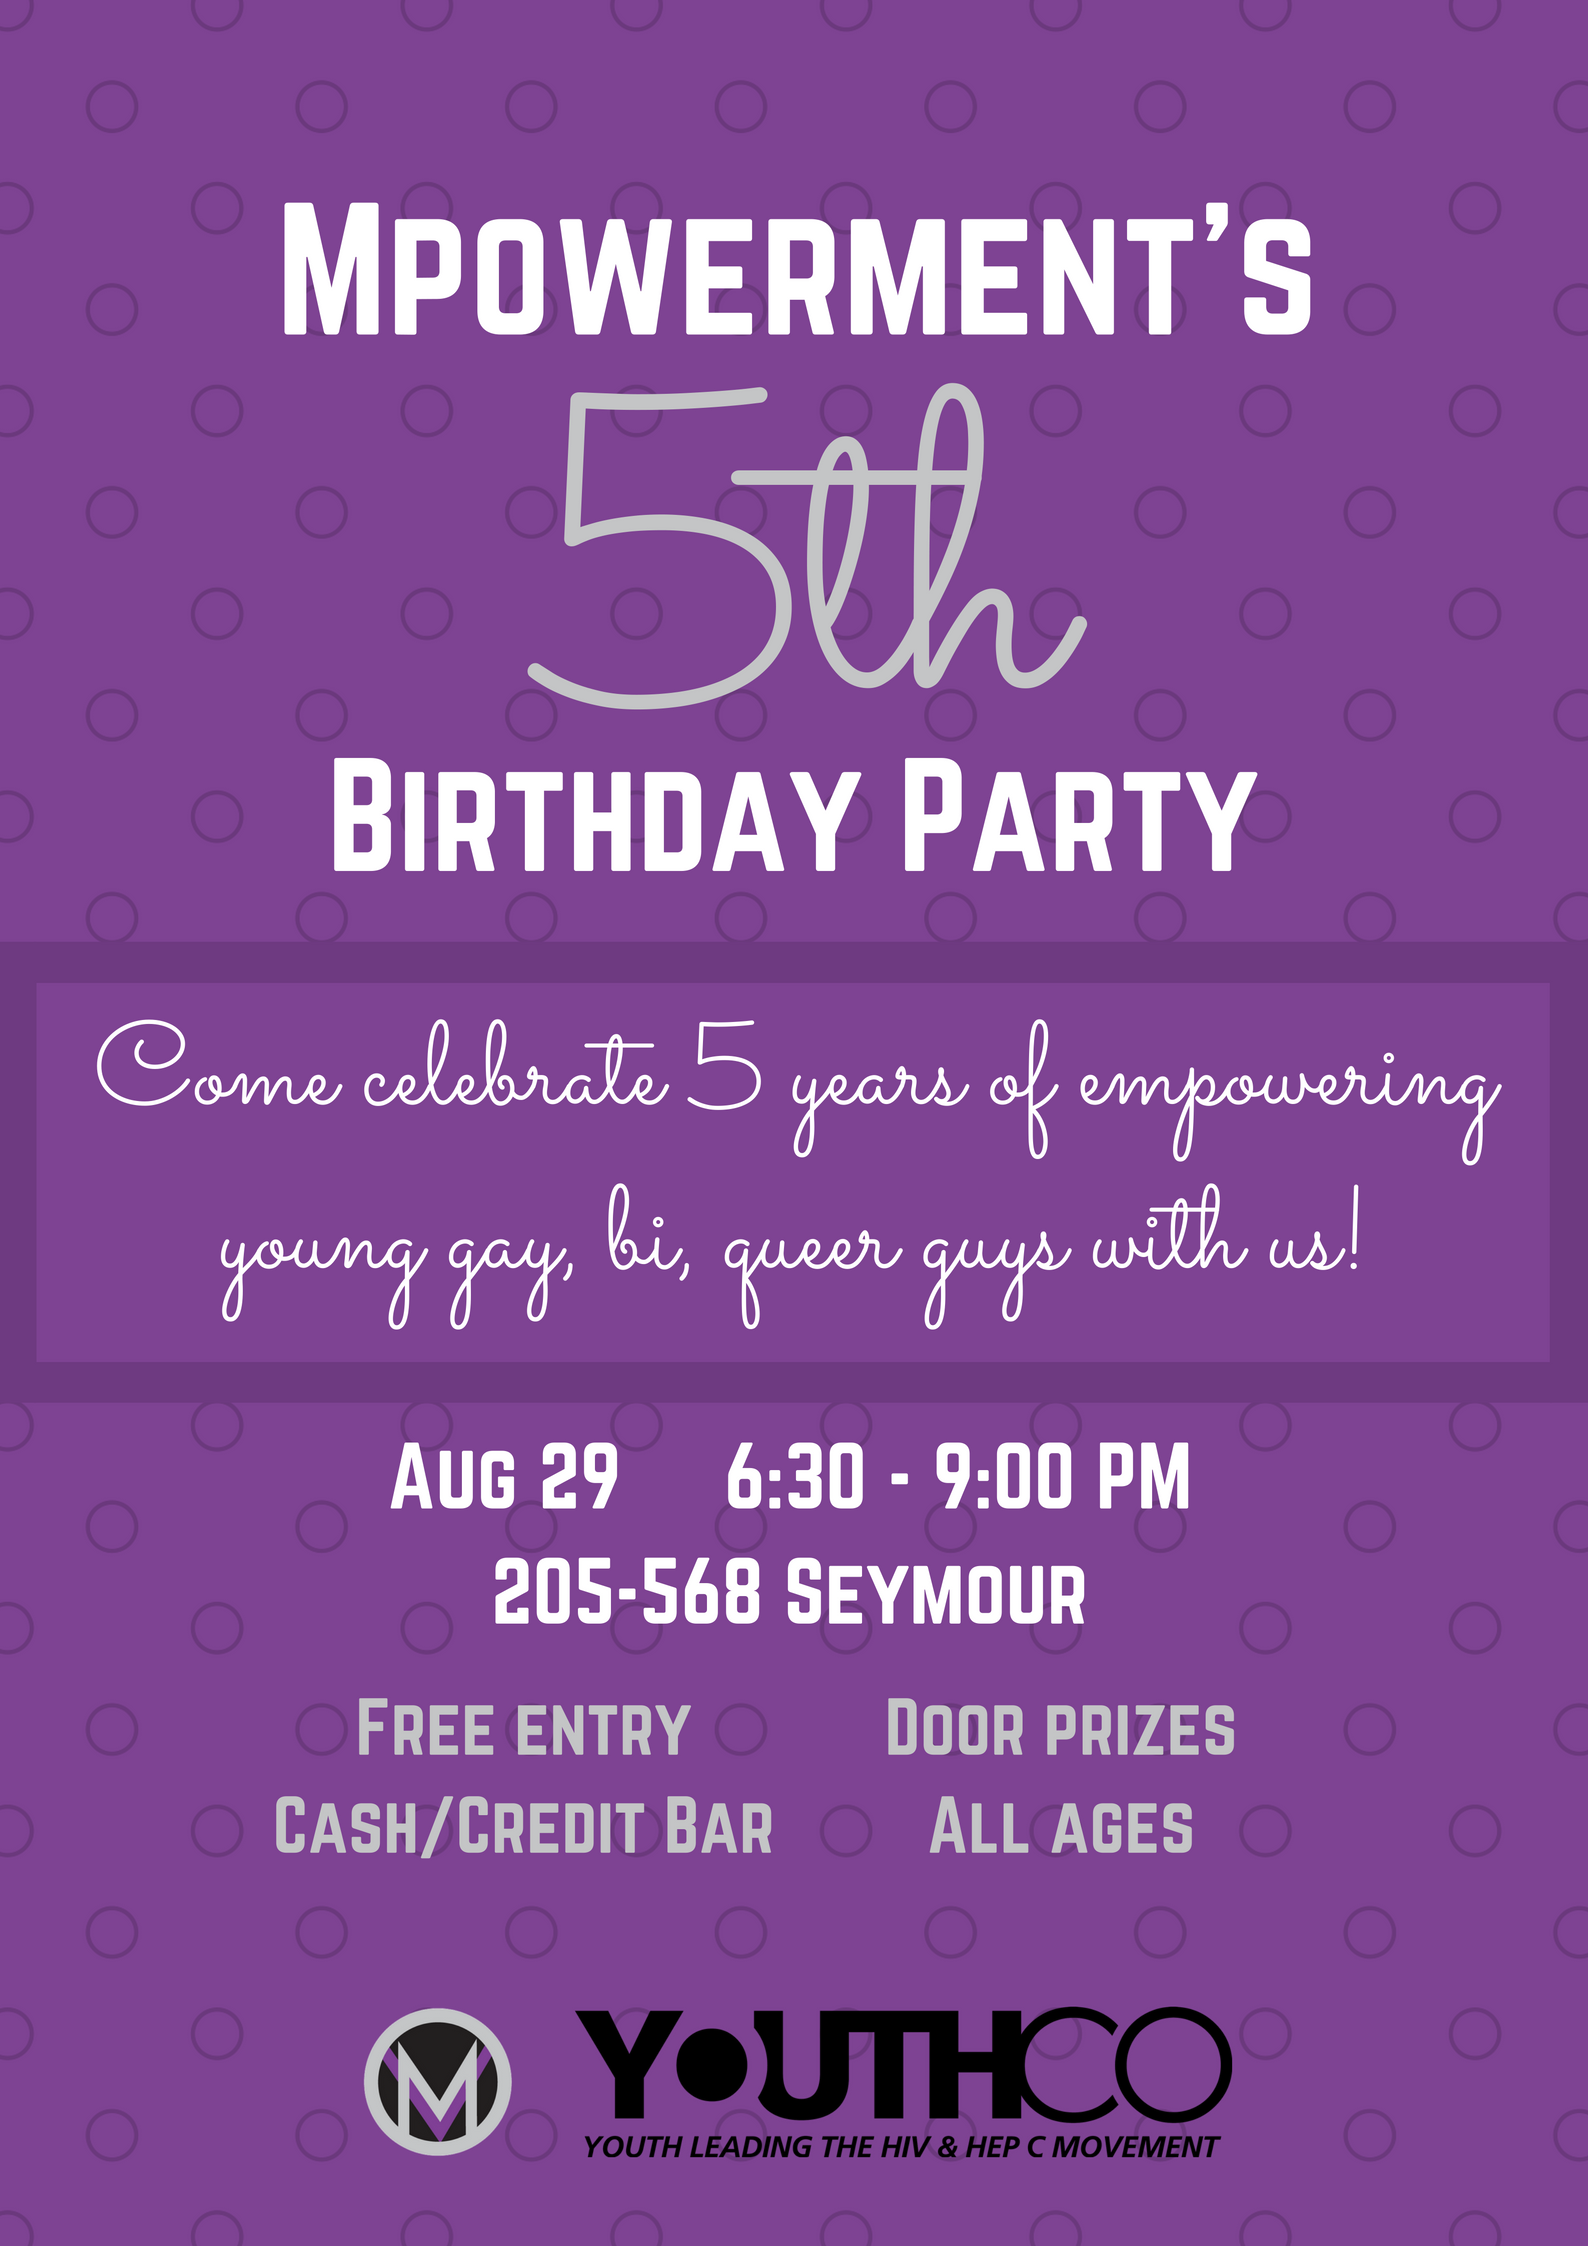 Facebook_Mpowerment_5th_Birthday_Party.png